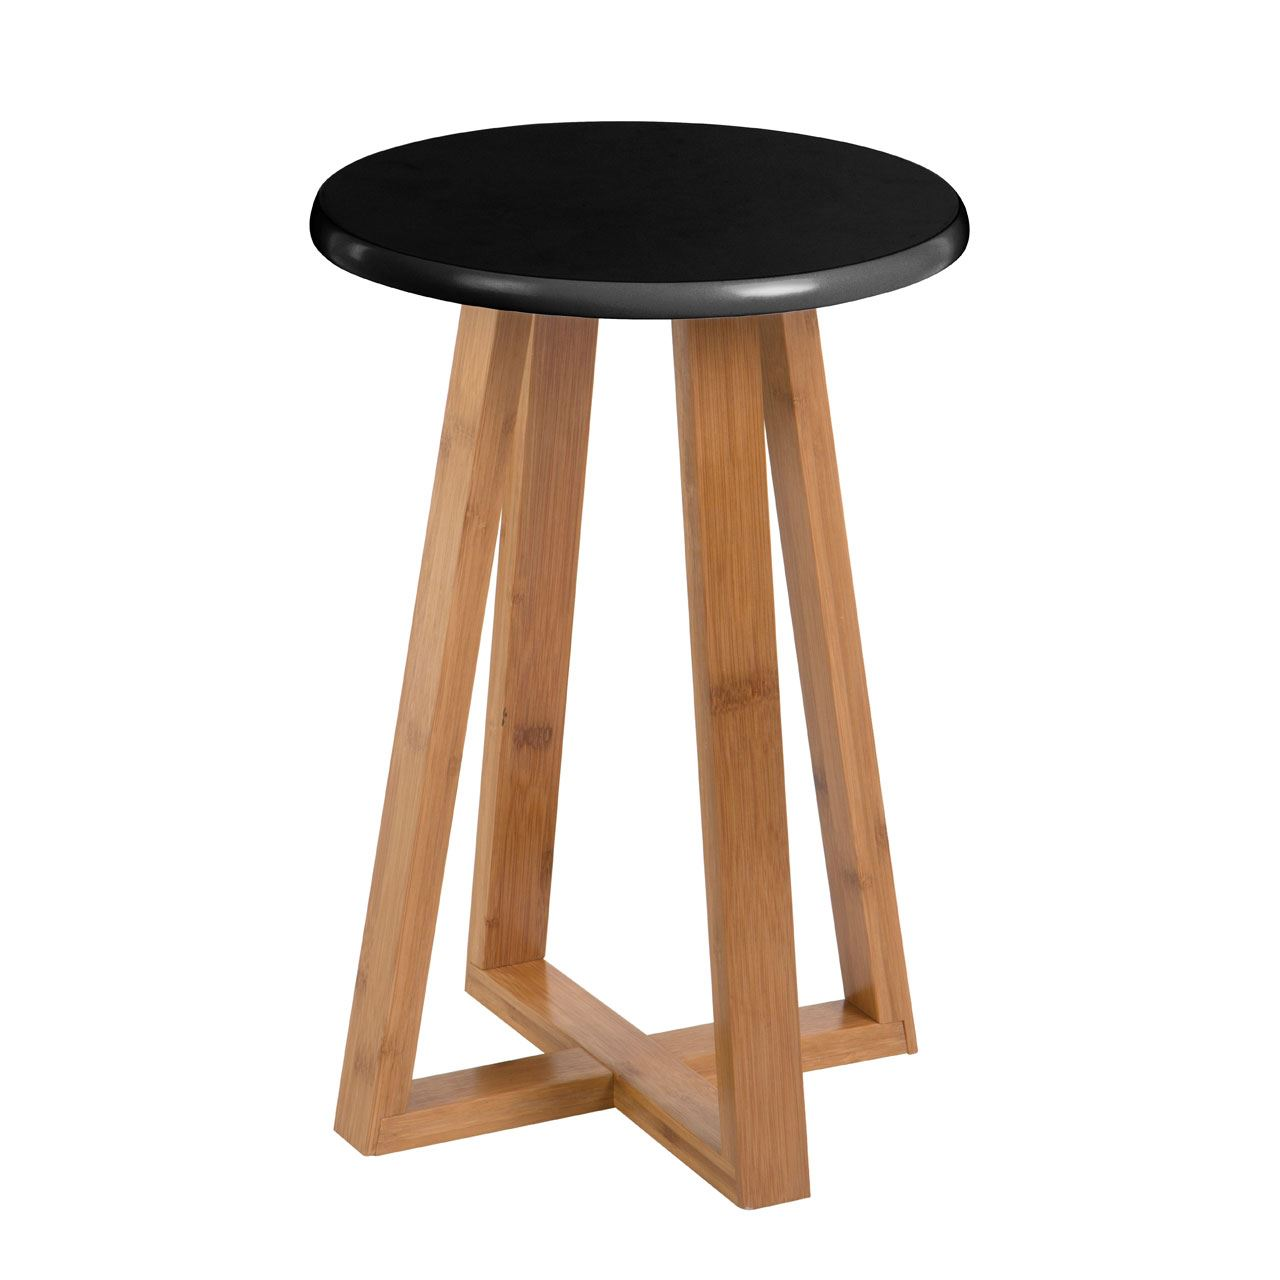 Amazing photo of  Round Stool / Bamboo Wood Base Legs / Breakfast Bar Rest Kitchen with #7B4E2C color and 1280x1280 pixels